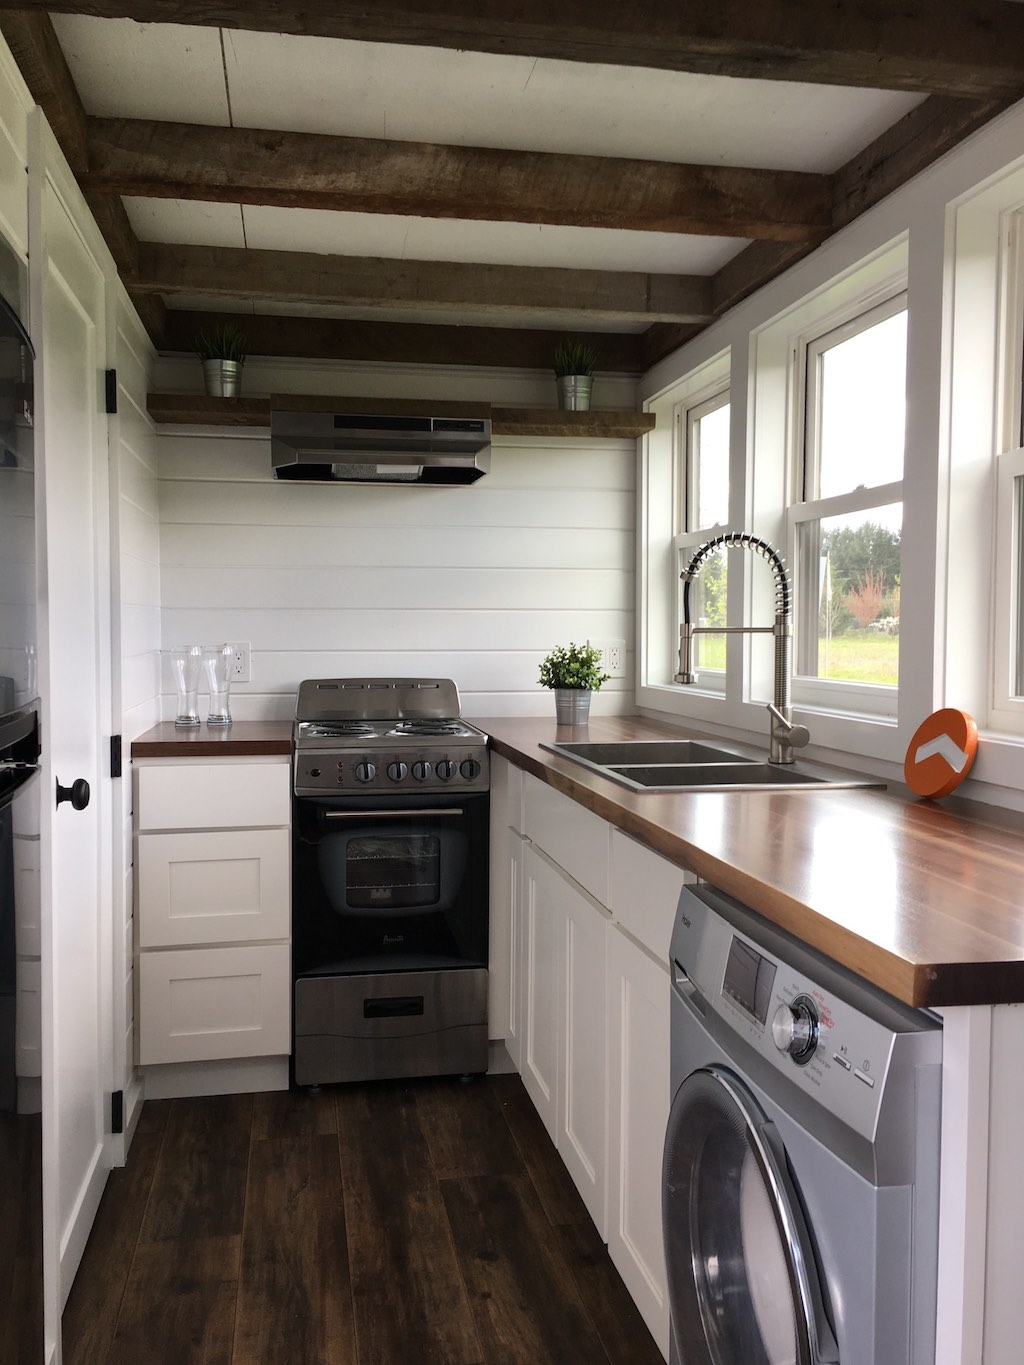 covo-tiny-house-4